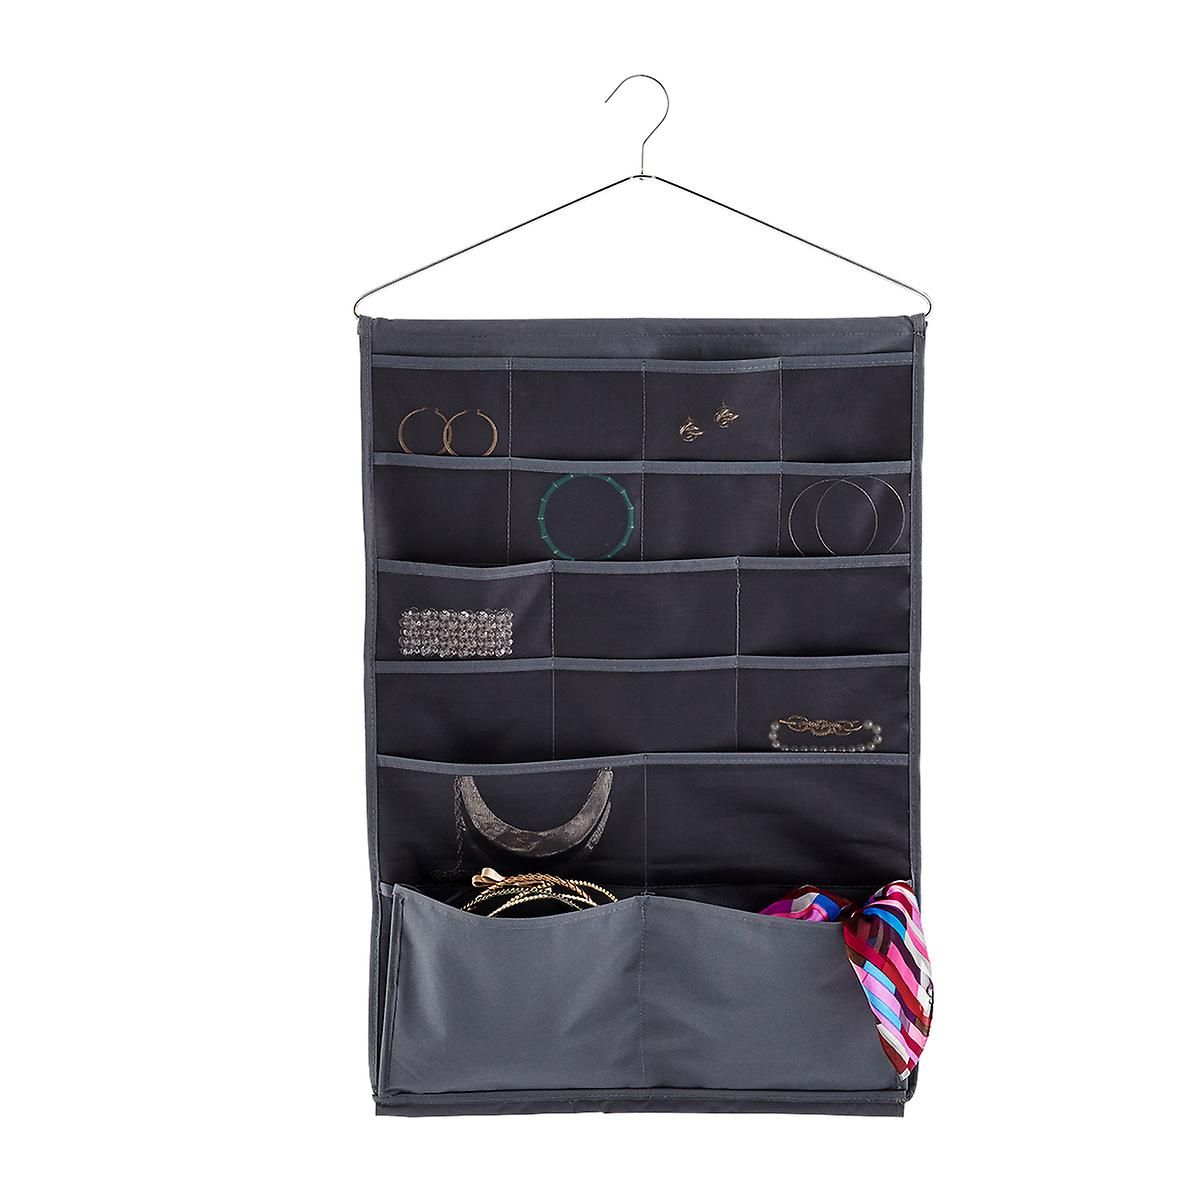 Bestow Jewelry Organizer by Umbra Store and organize Pinterest